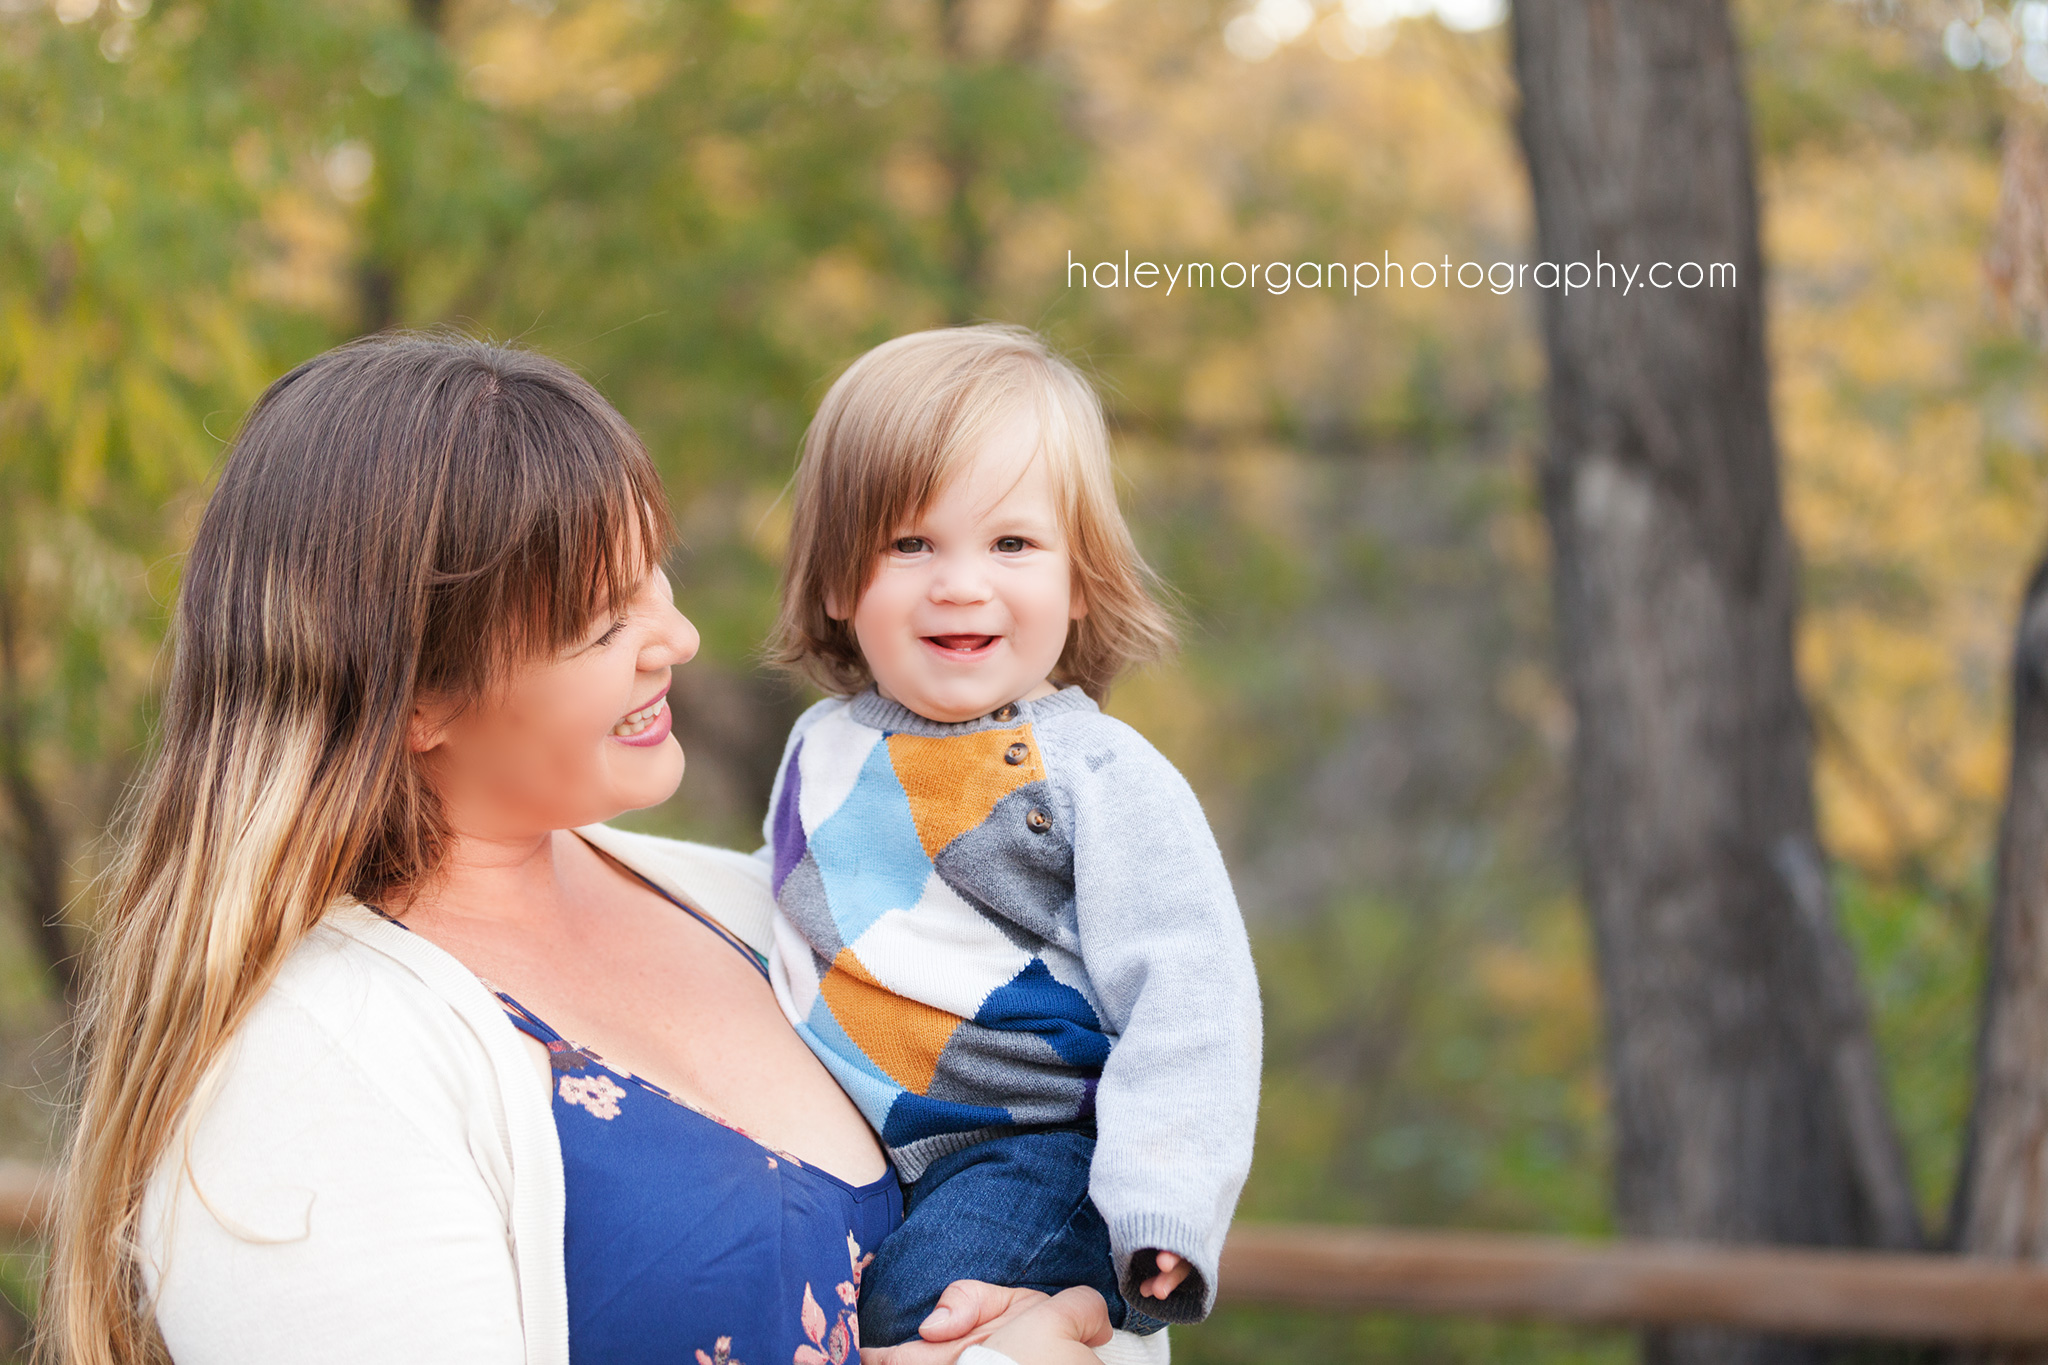 Denver Family Photographer, Golden Family Photographer, Denver Photographer, Golden Photographer, Haley Morgan Photography, Denver Children Photographer, Clear Creek Trail, Clear Creek History Park, Clear Creek Historic Park, The Golden Hotel